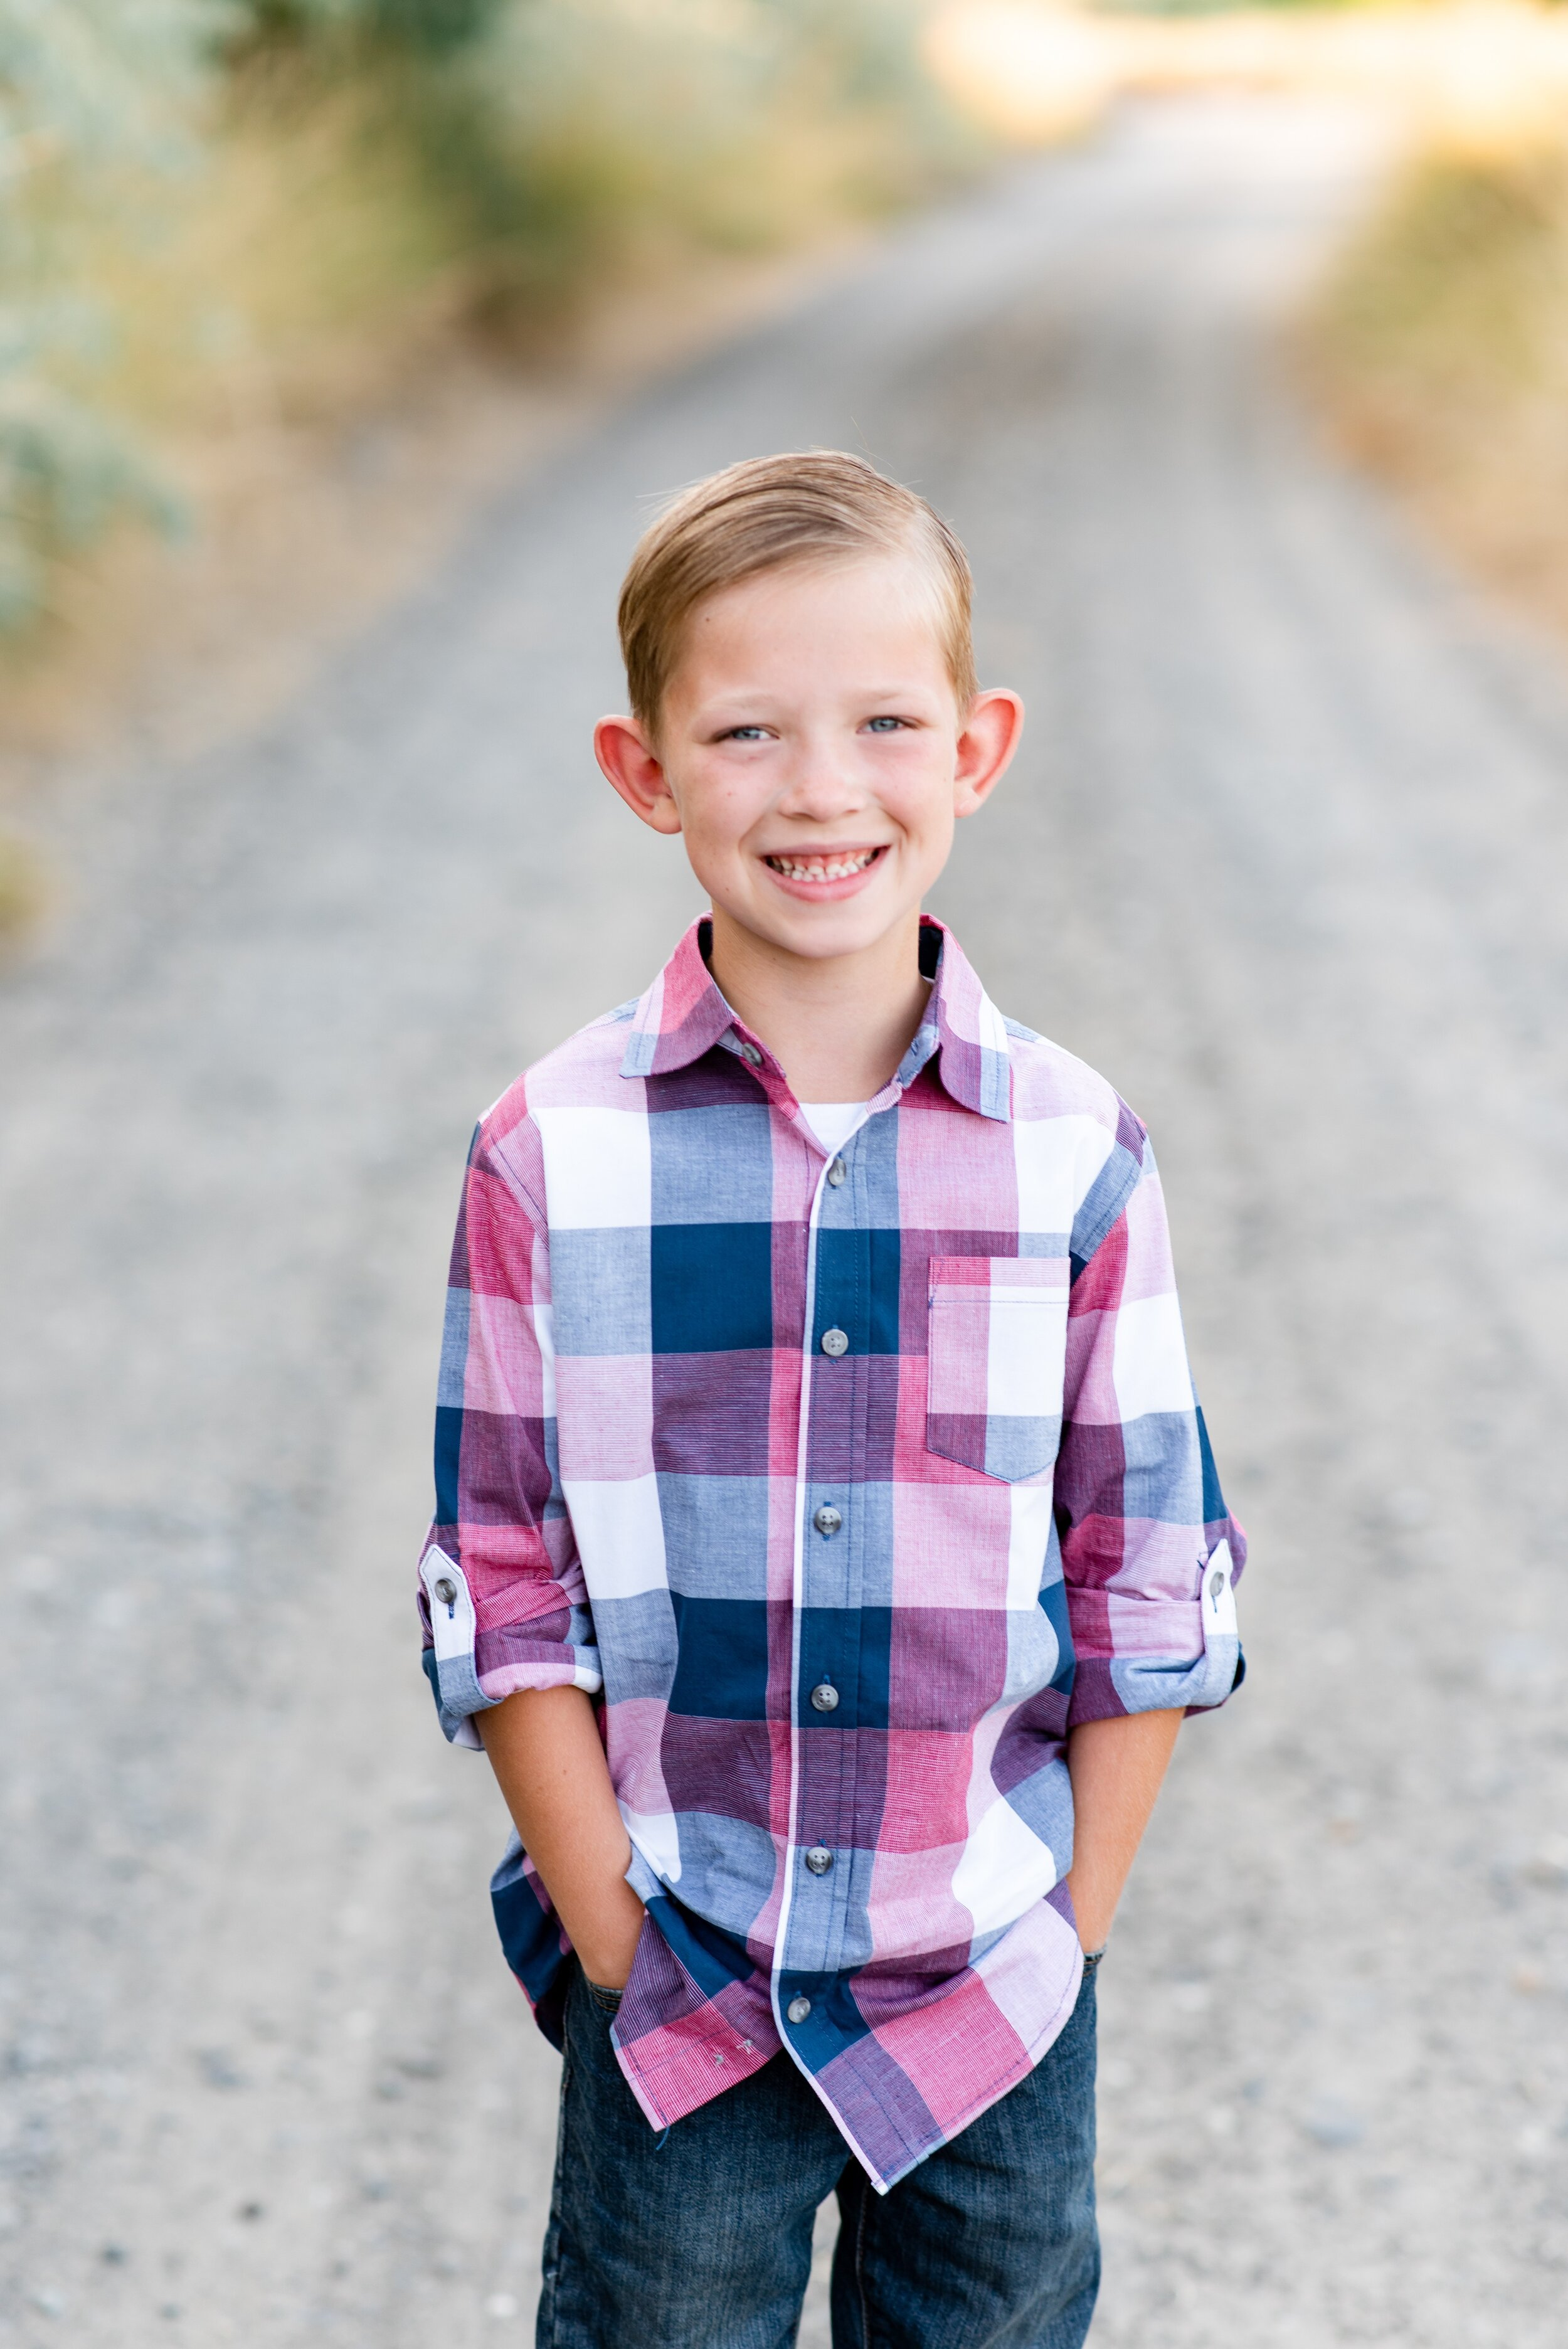 What to Wear To Fall Family Photos - Basin City Washington Family Photos - Tri Cities Family Photographer - Morgan Tayler Photo & Design